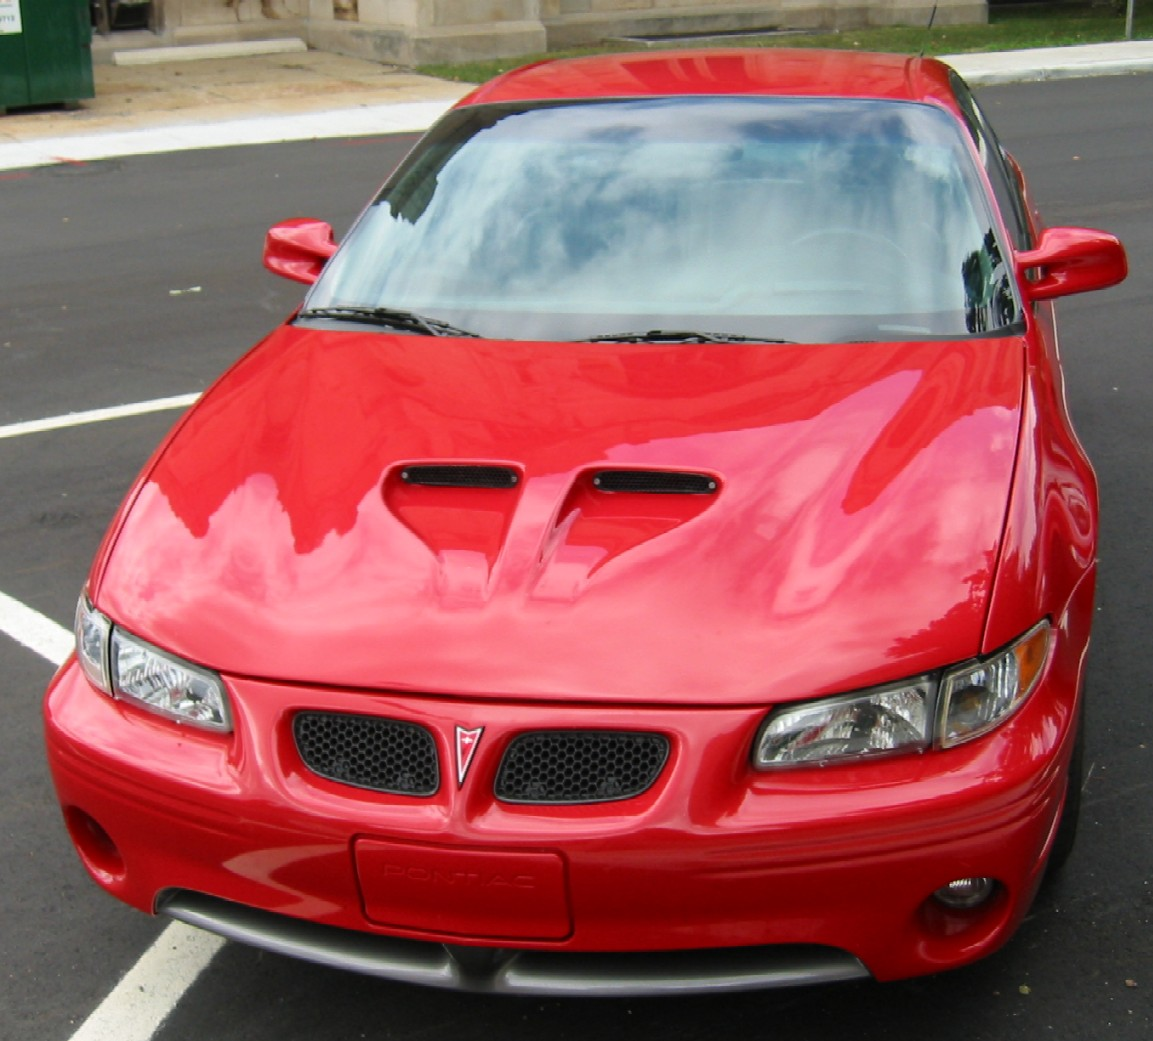 2001 Pontiac Grand Prix Gtx Ram Air 4 Dr Pictures Mods